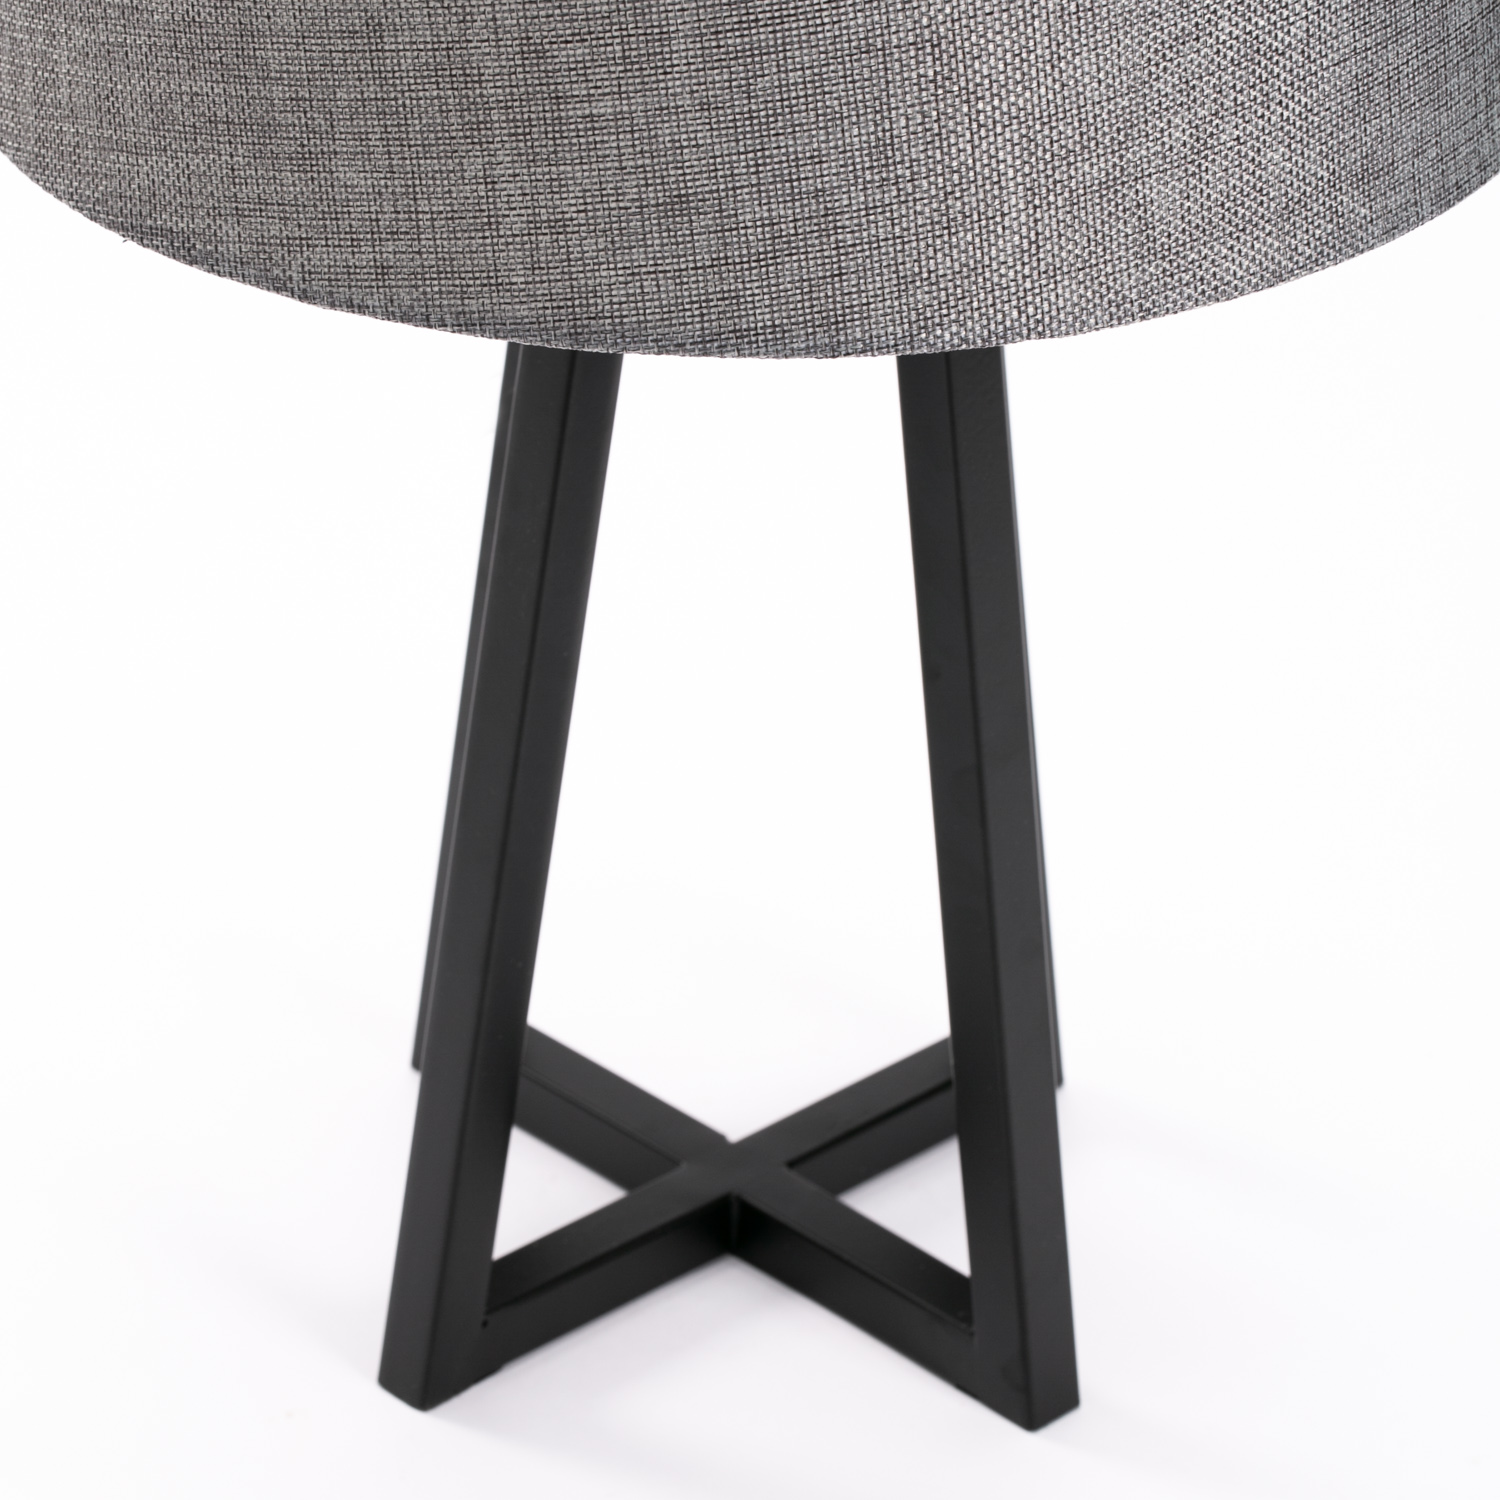 Decofurn Furniture Lamp Table Black Metal Base Grey